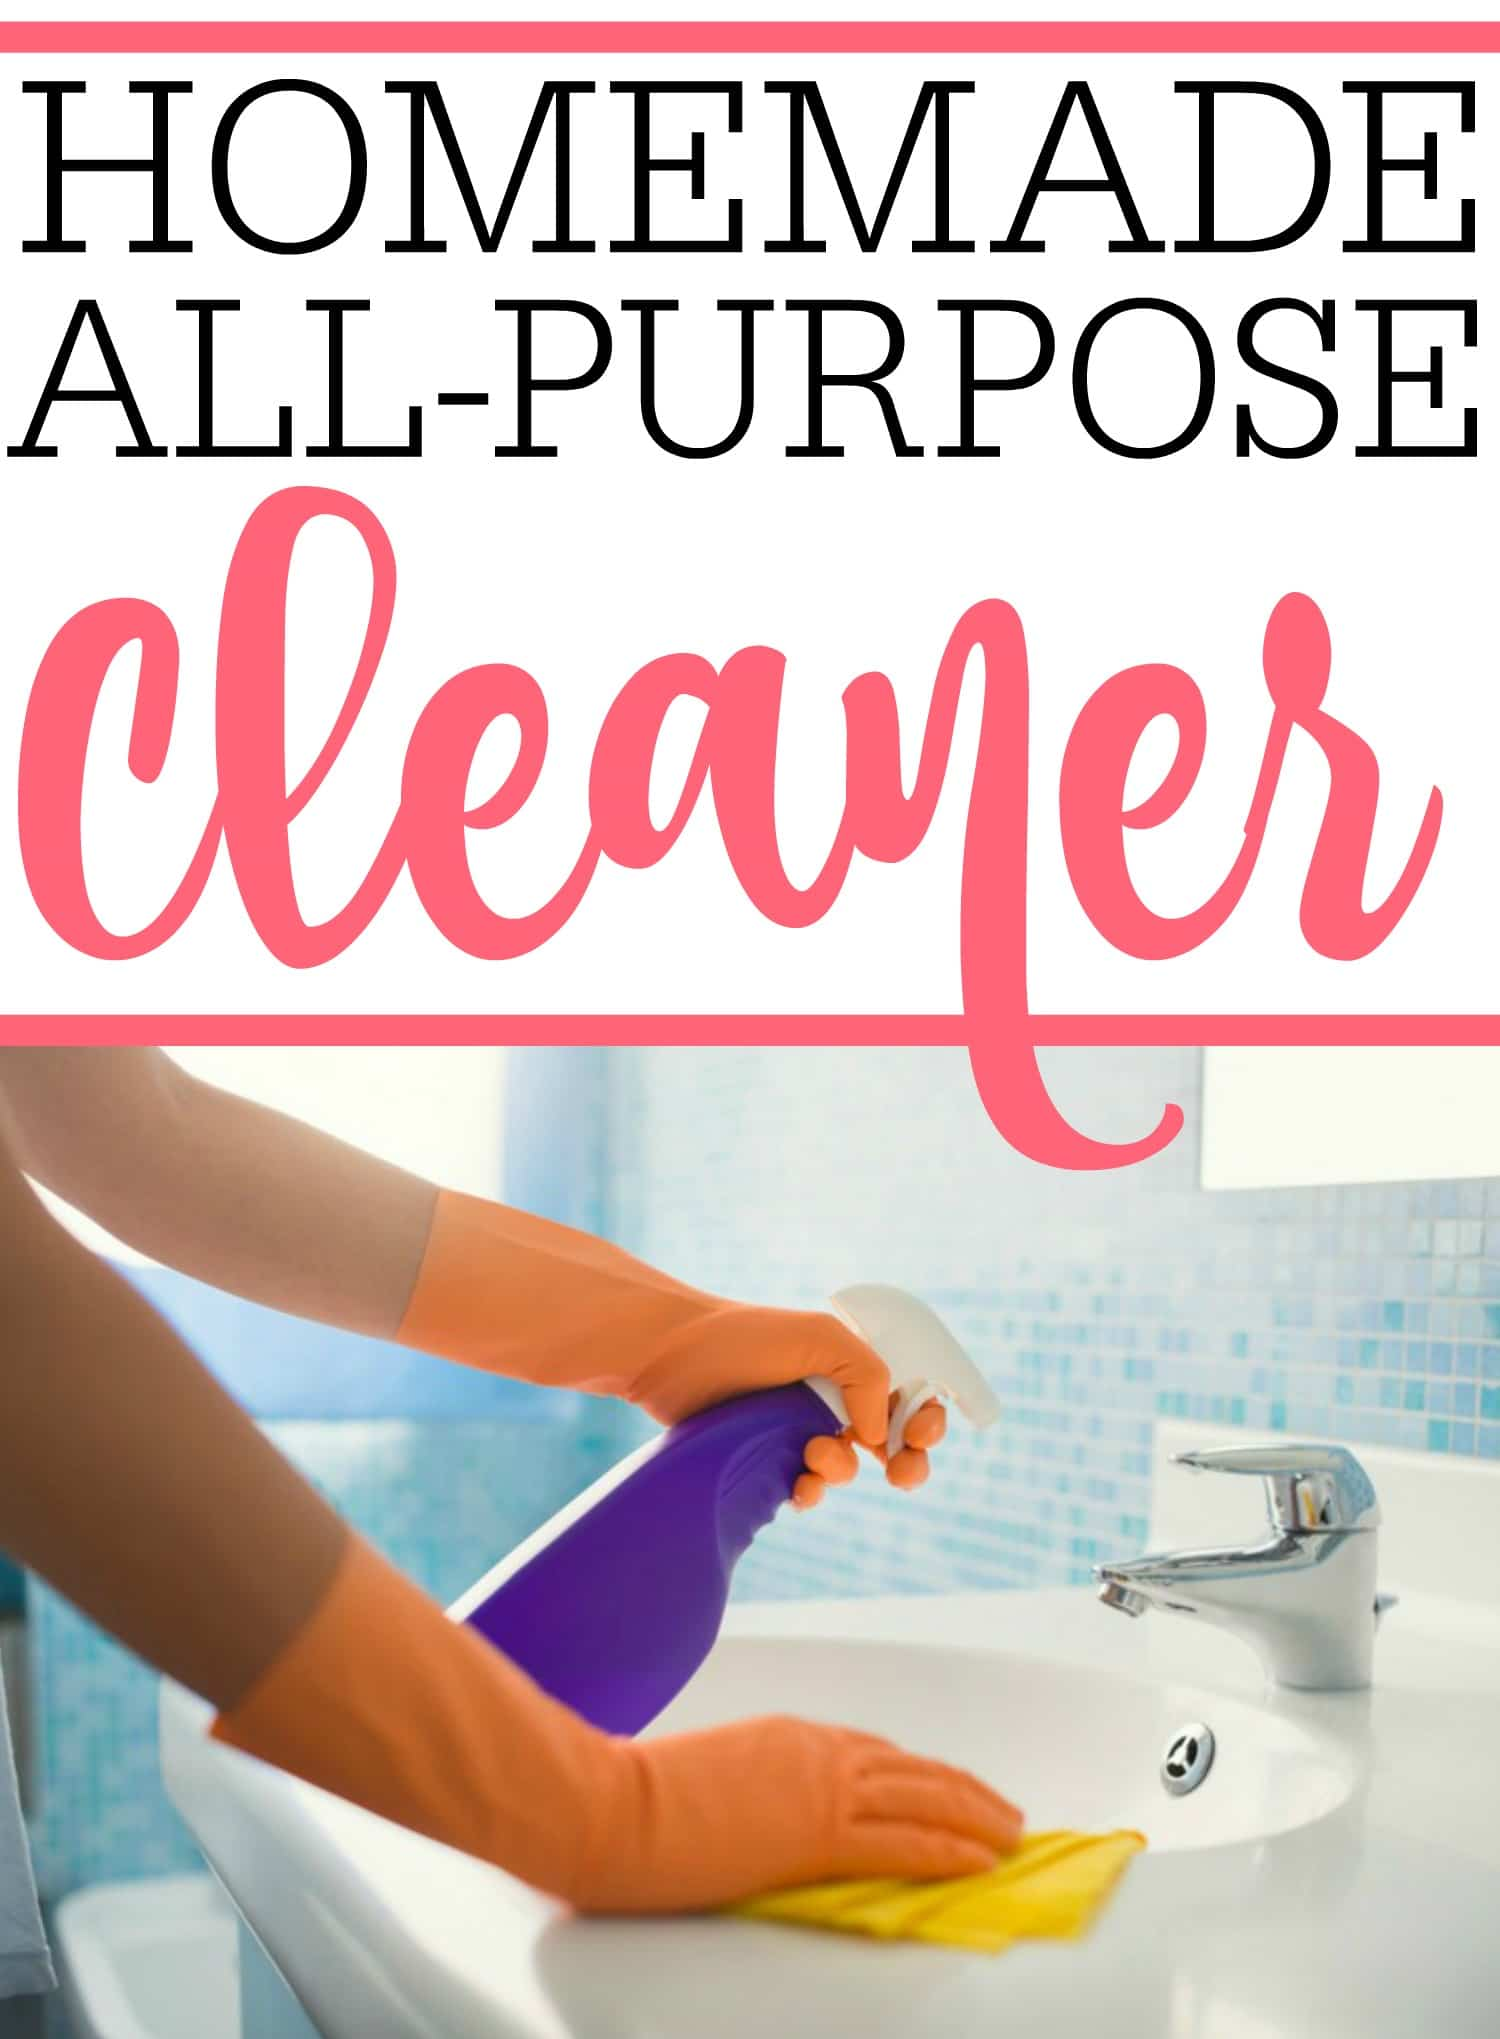 Looking for the perfect homemade all-purpose cleaner? This easy DIY all-purpose cleaner only takes minutes to make. Plus, you probably already have the ingredients at home to make it.